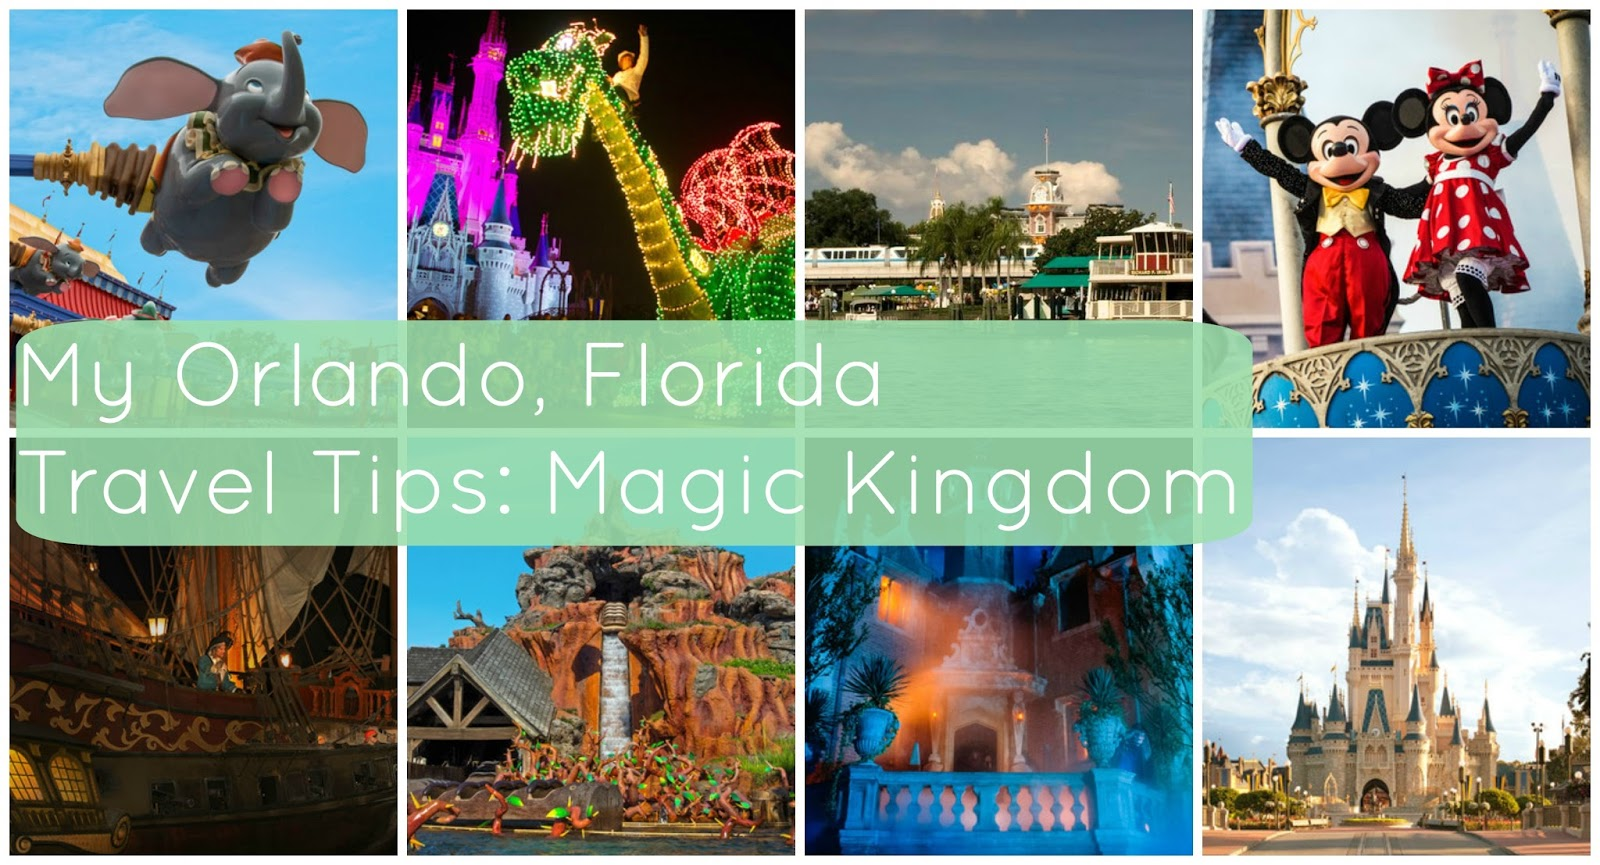 Disney Magic Kingdom Travel Tips